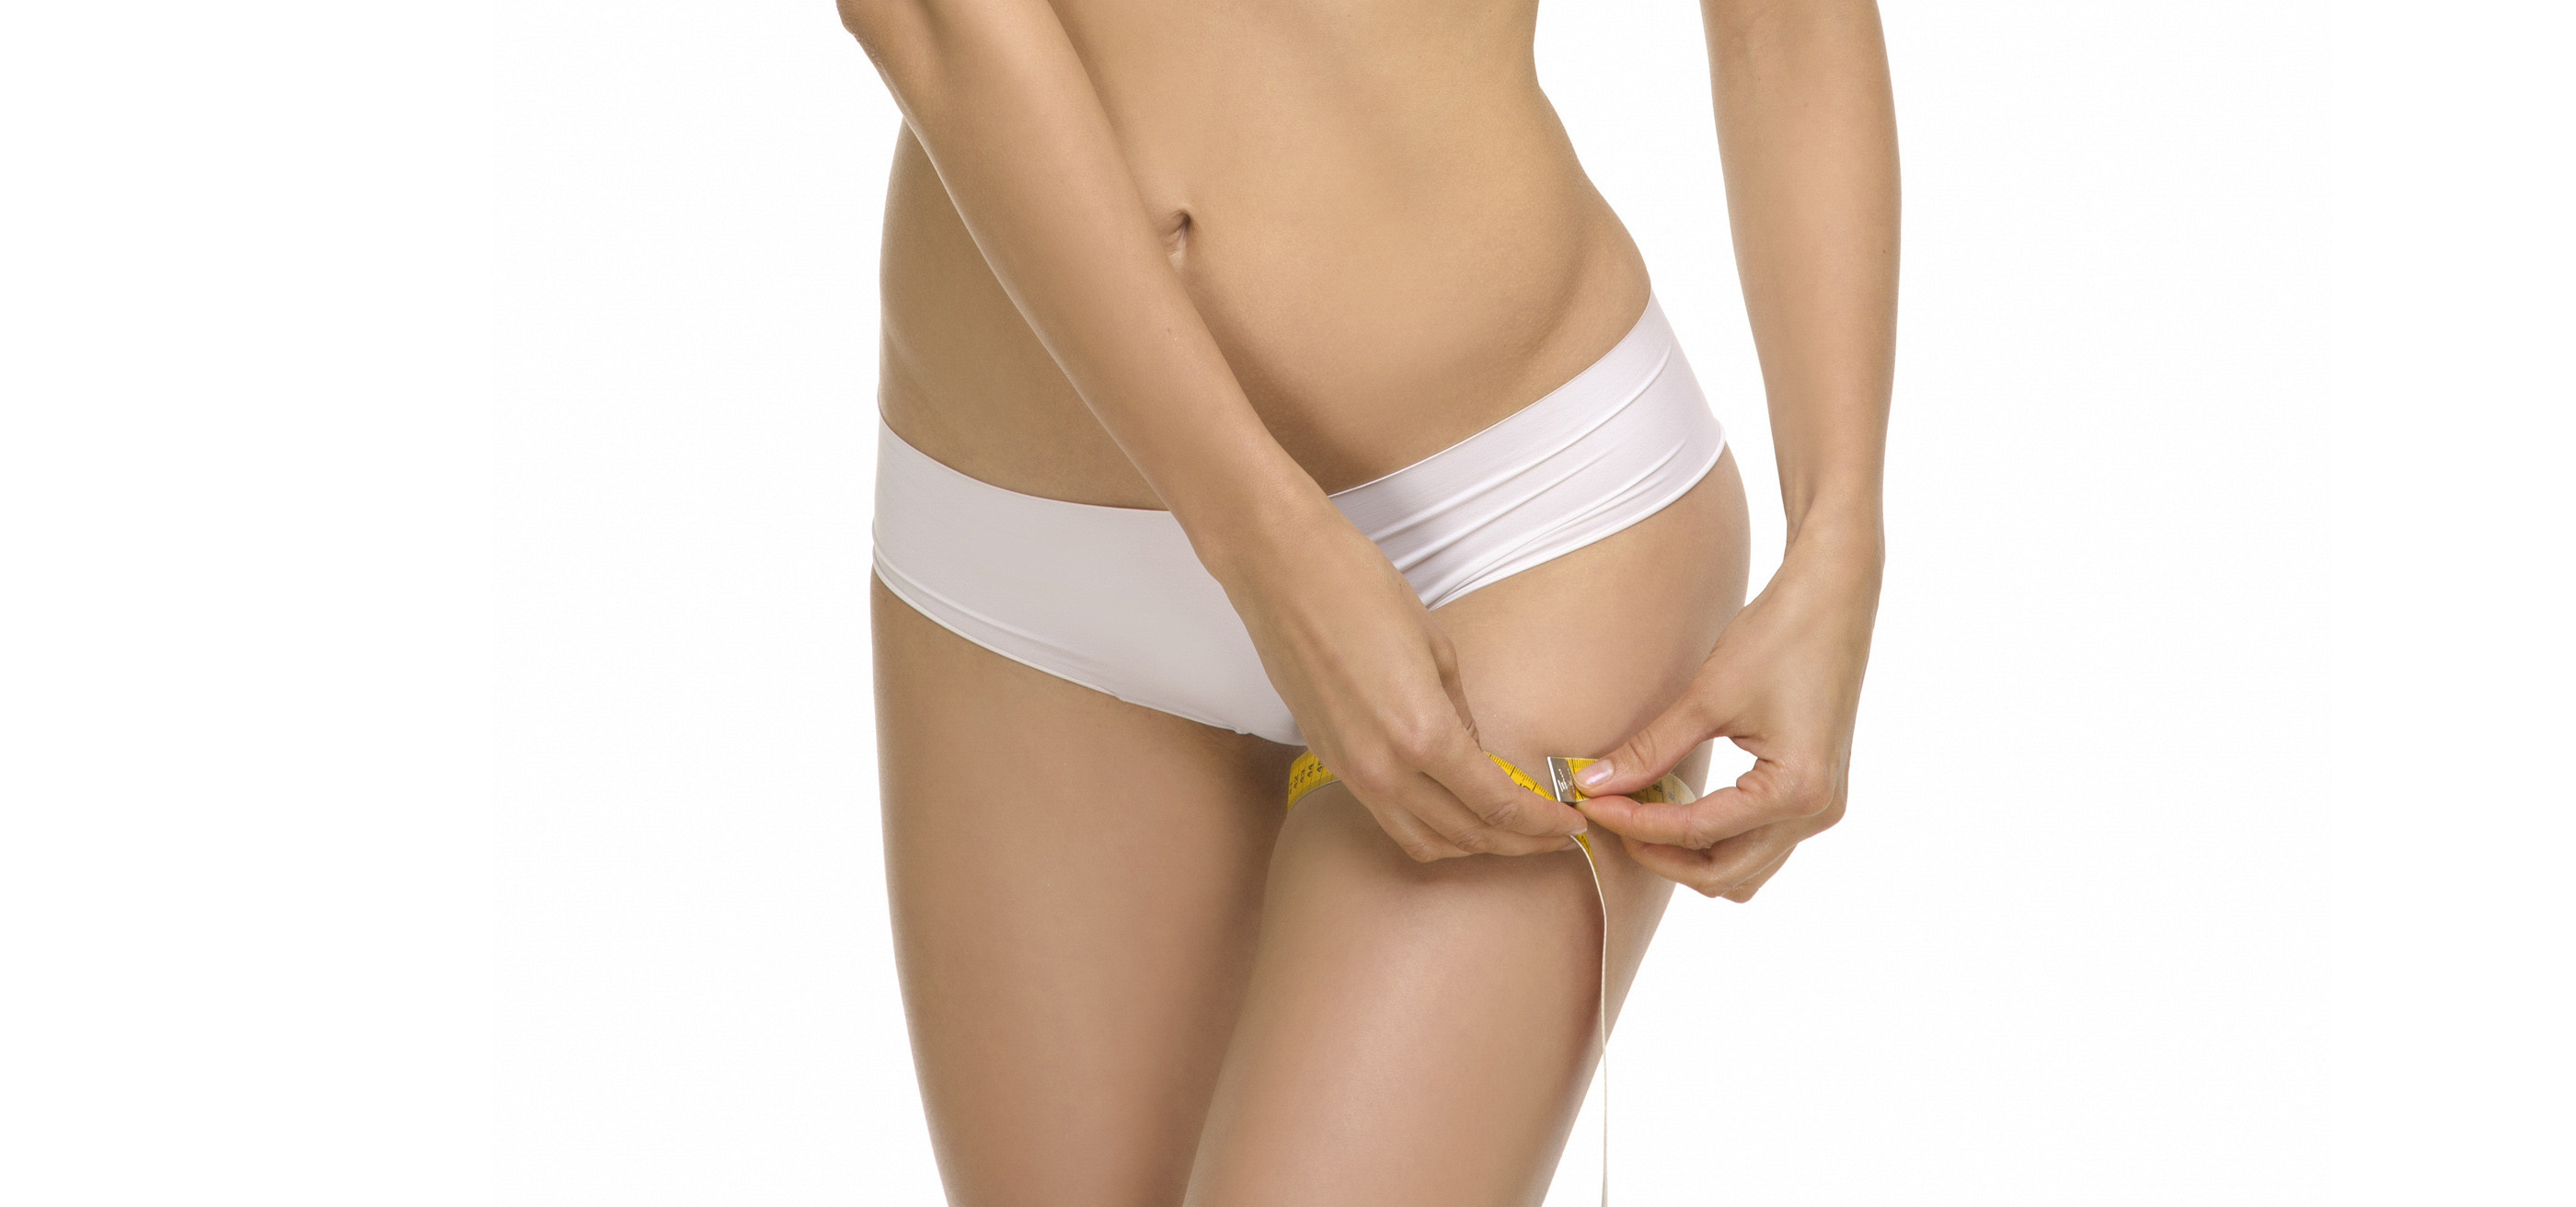 What is Vaser Liposuction Of Vaser Lipo Operations Treatments Polyclinic Milojevic with Regard to Vaser Lipo